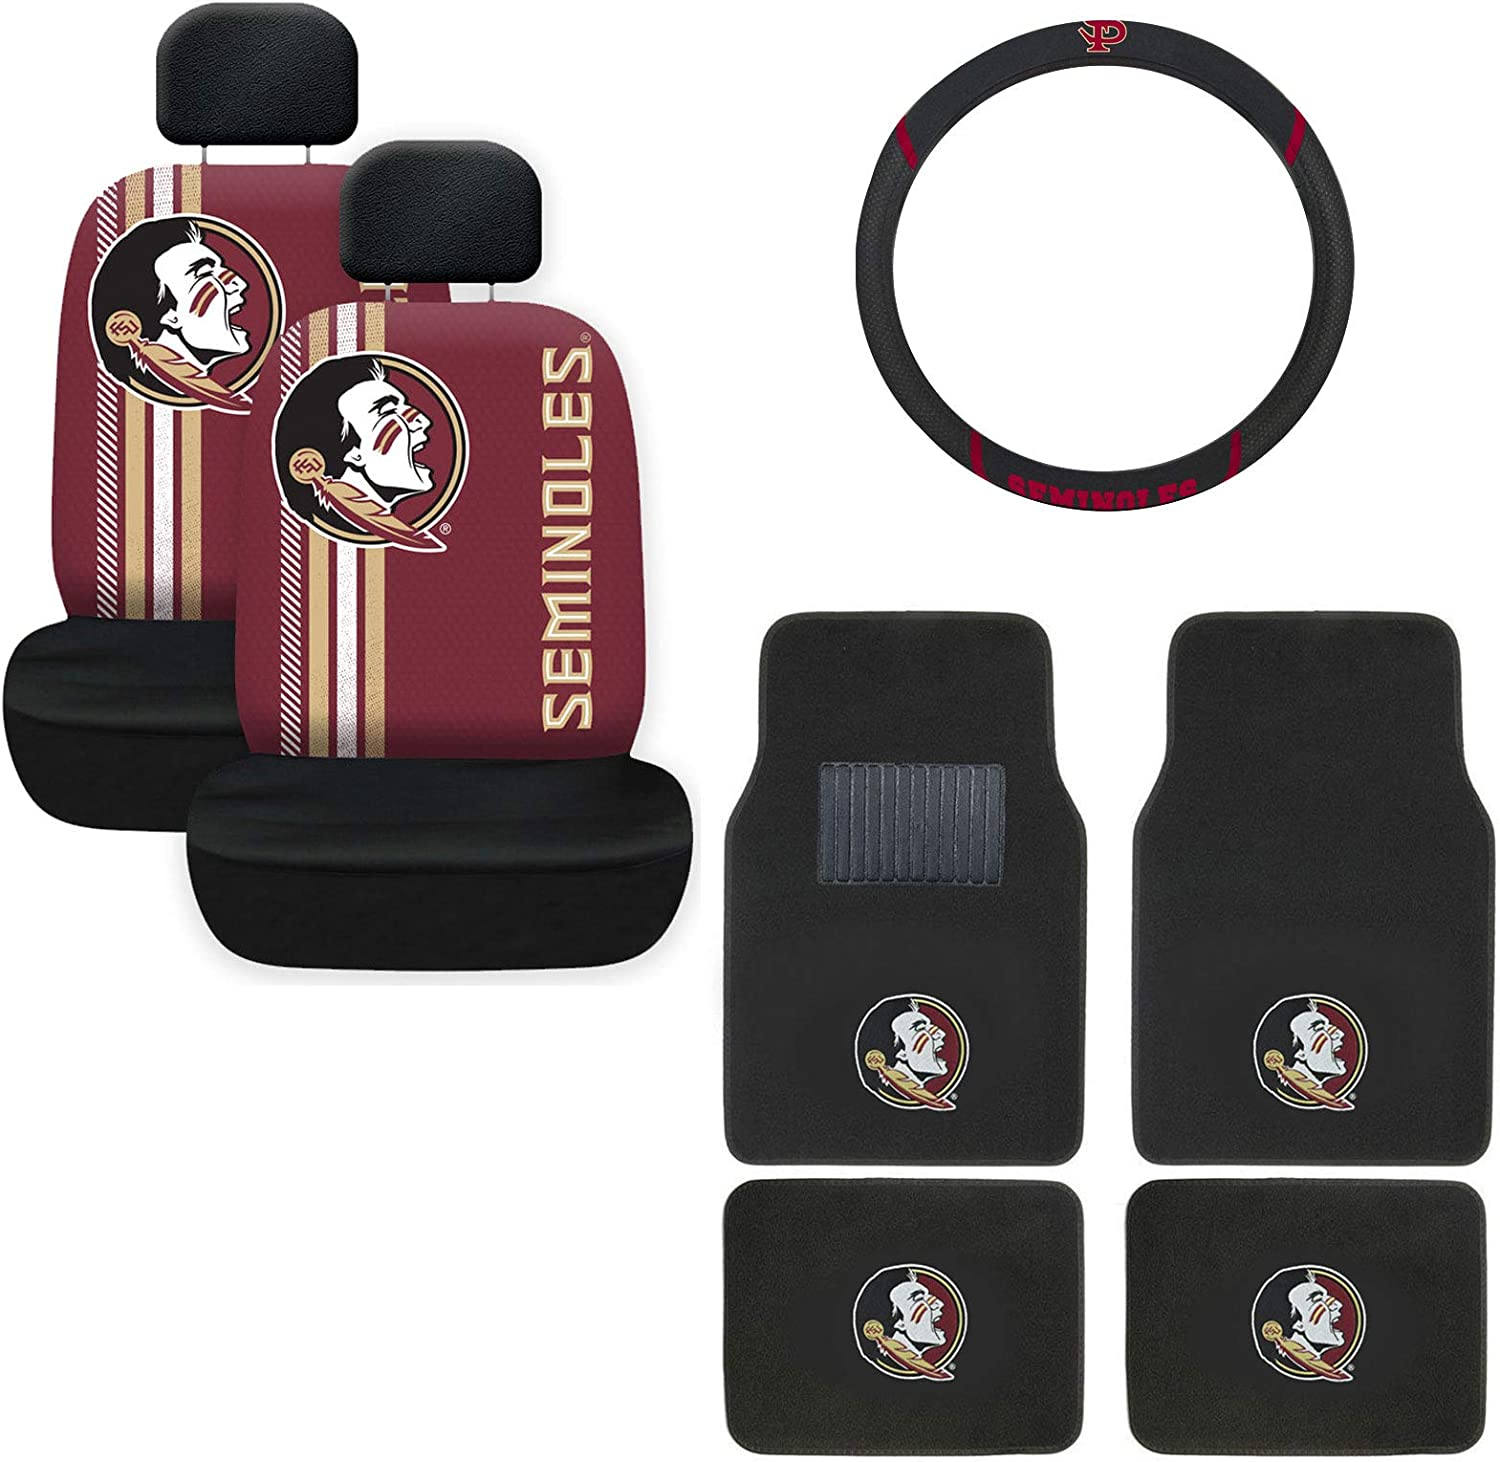 AAC Max 57% OFF Florida State Carpet Floor Mat Covers and Wheel Ralley Brand new Seat